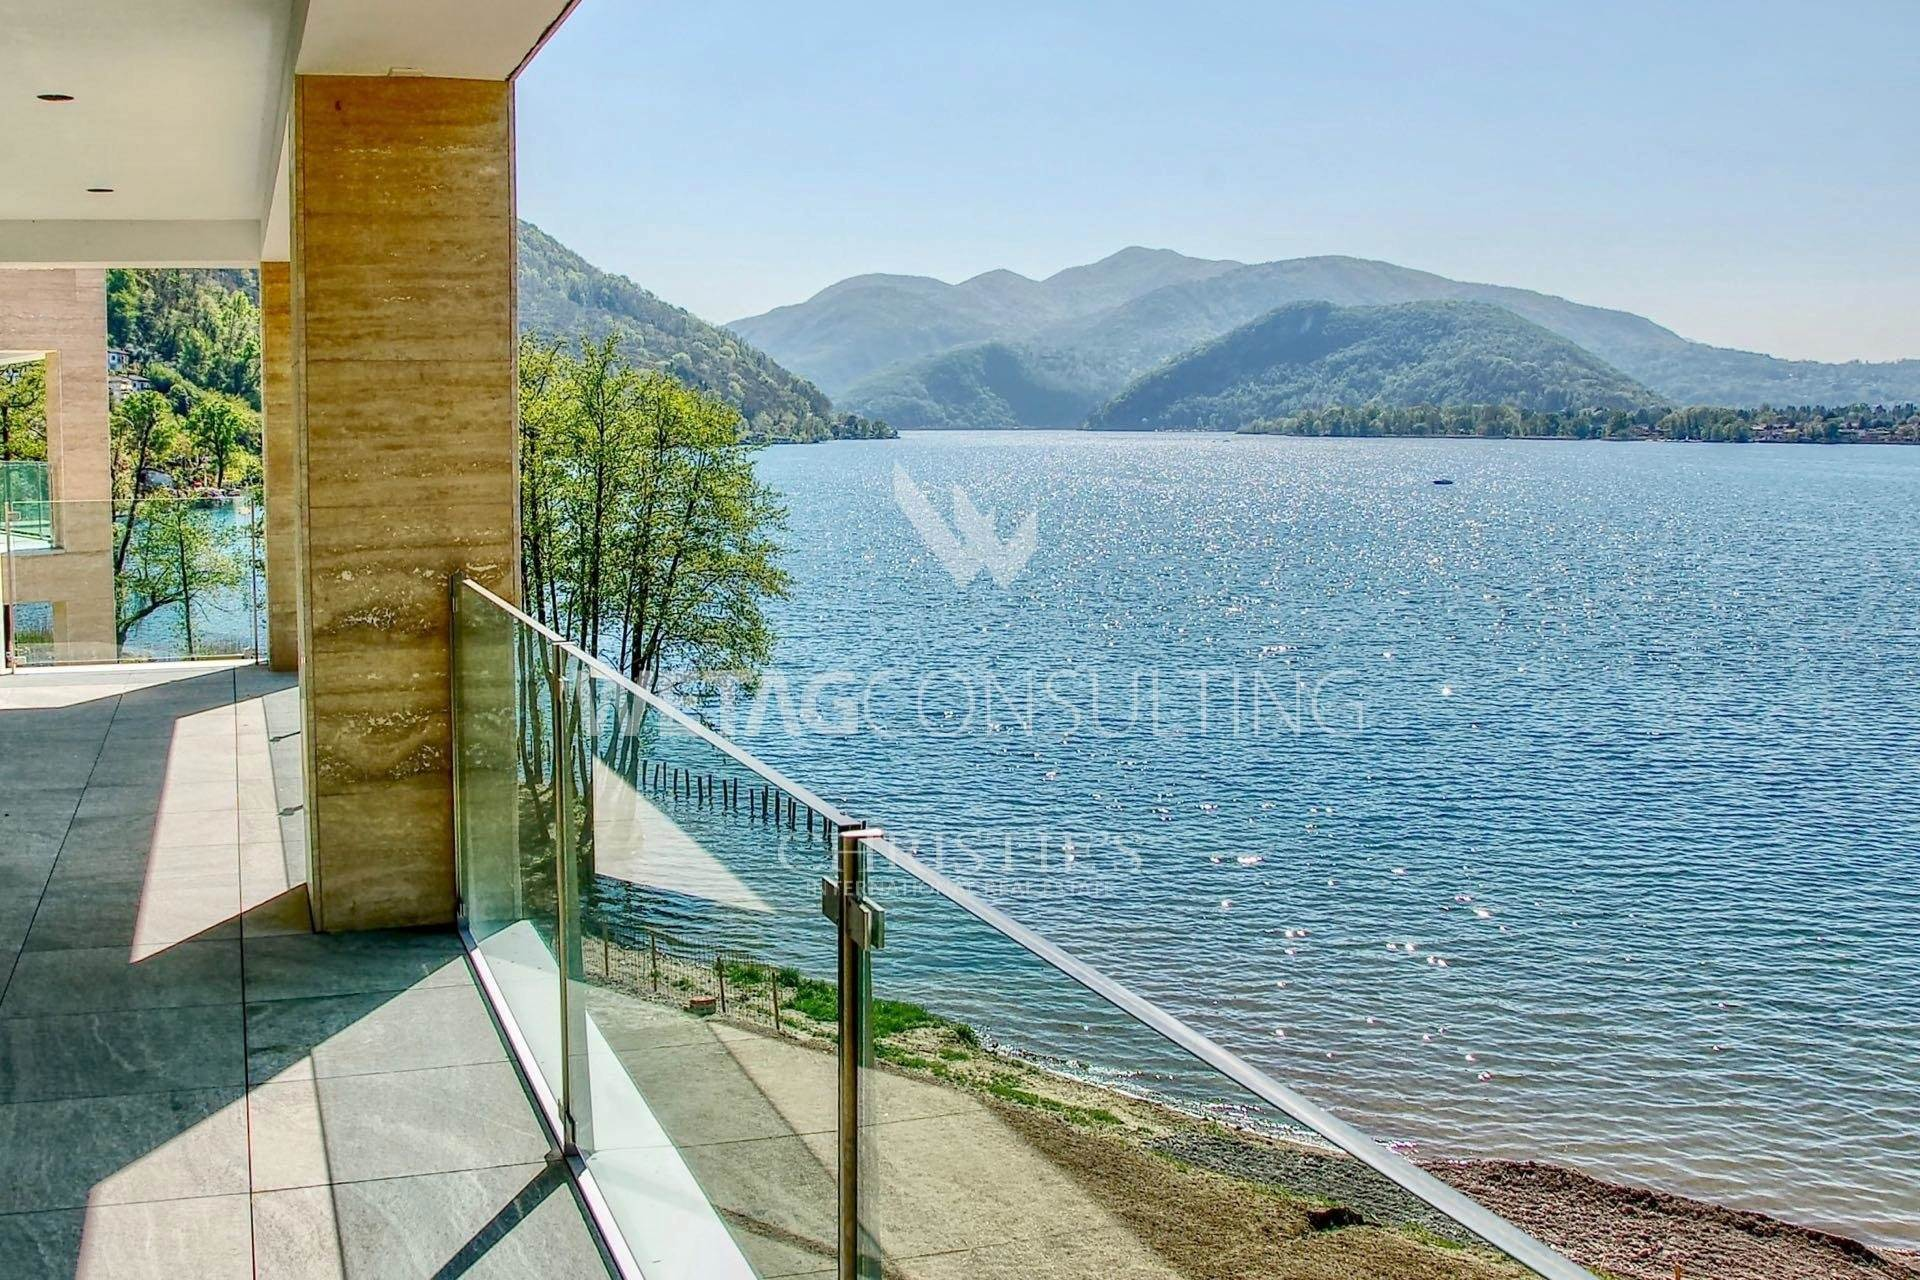 Residence/Apartment for Sale at Prestigious 2-bedroom apartments for sale in Muzzano directly on Lake Lugano Muzzano, Ticino,6933 Switzerland